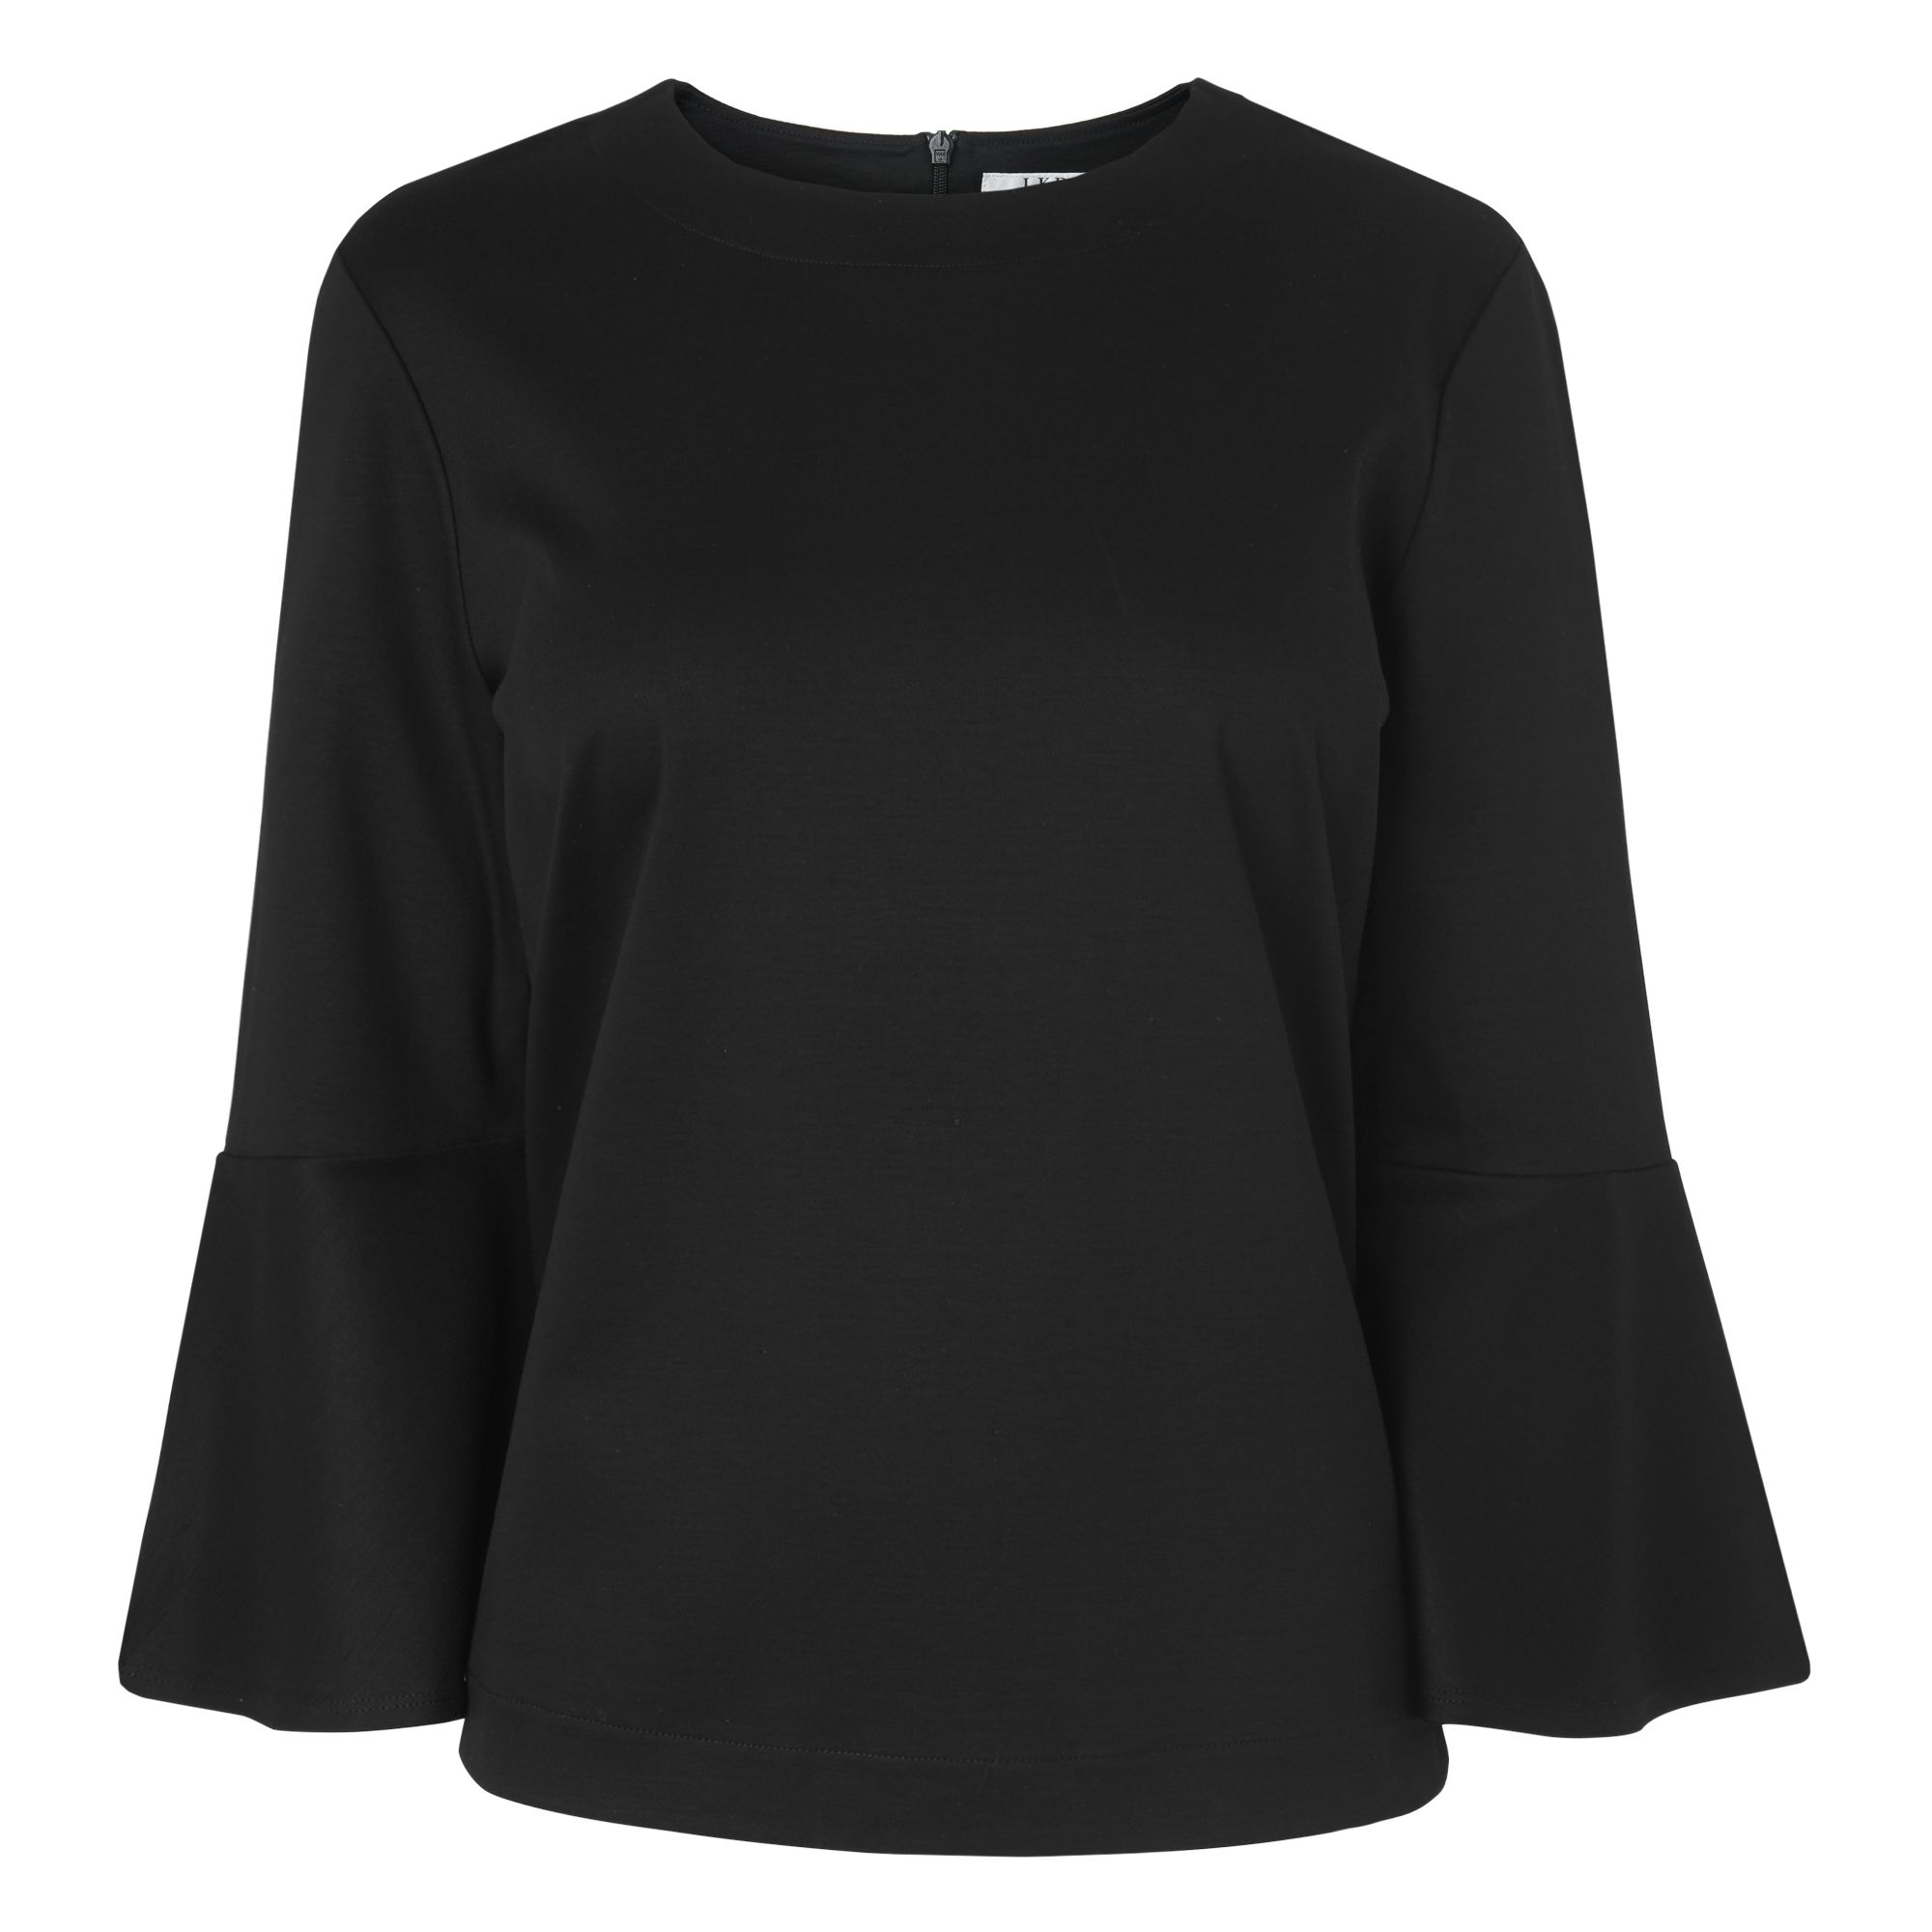 L.K. Bennett Leon Fluted Sleeve Top, Black